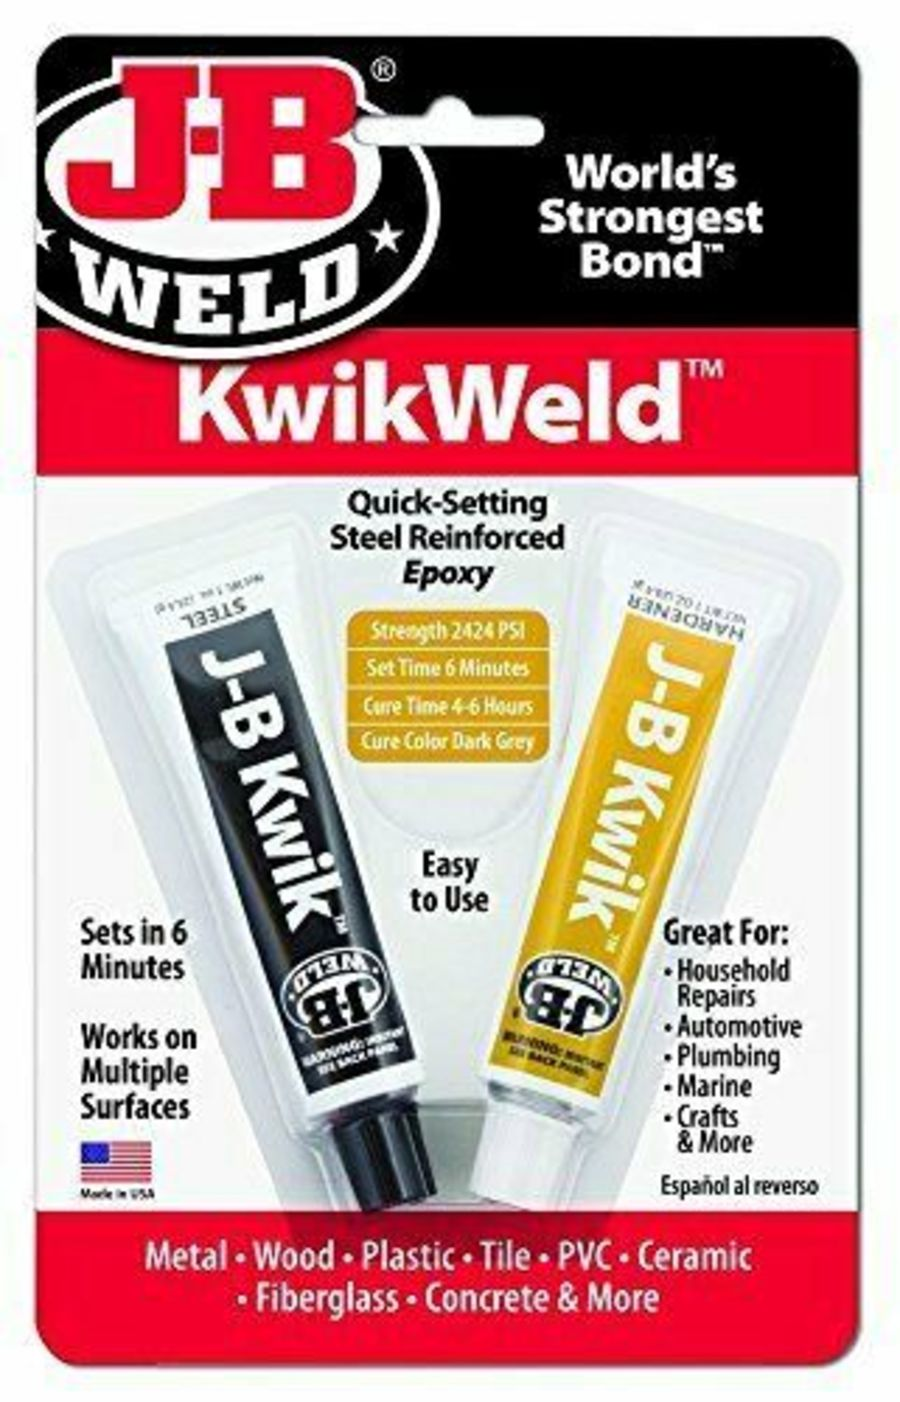 KwikWeld Quick Setting Steel Reinforced Epoxy Twin Tube